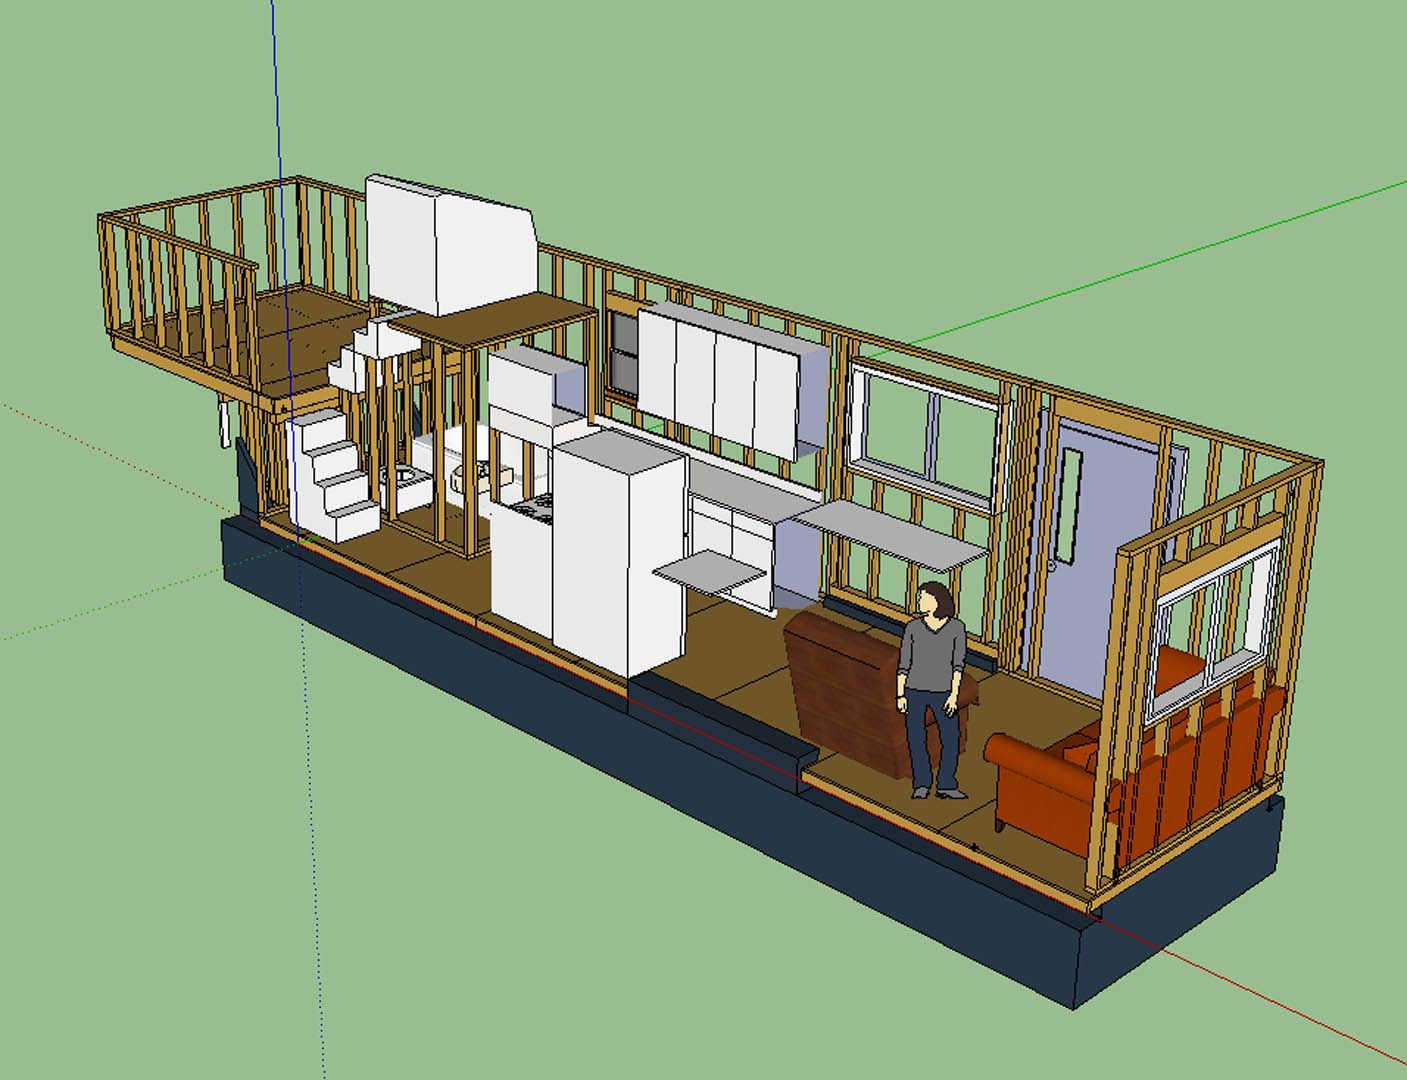 tiny house layout has master bedroom over fifth-wheel hitch, with